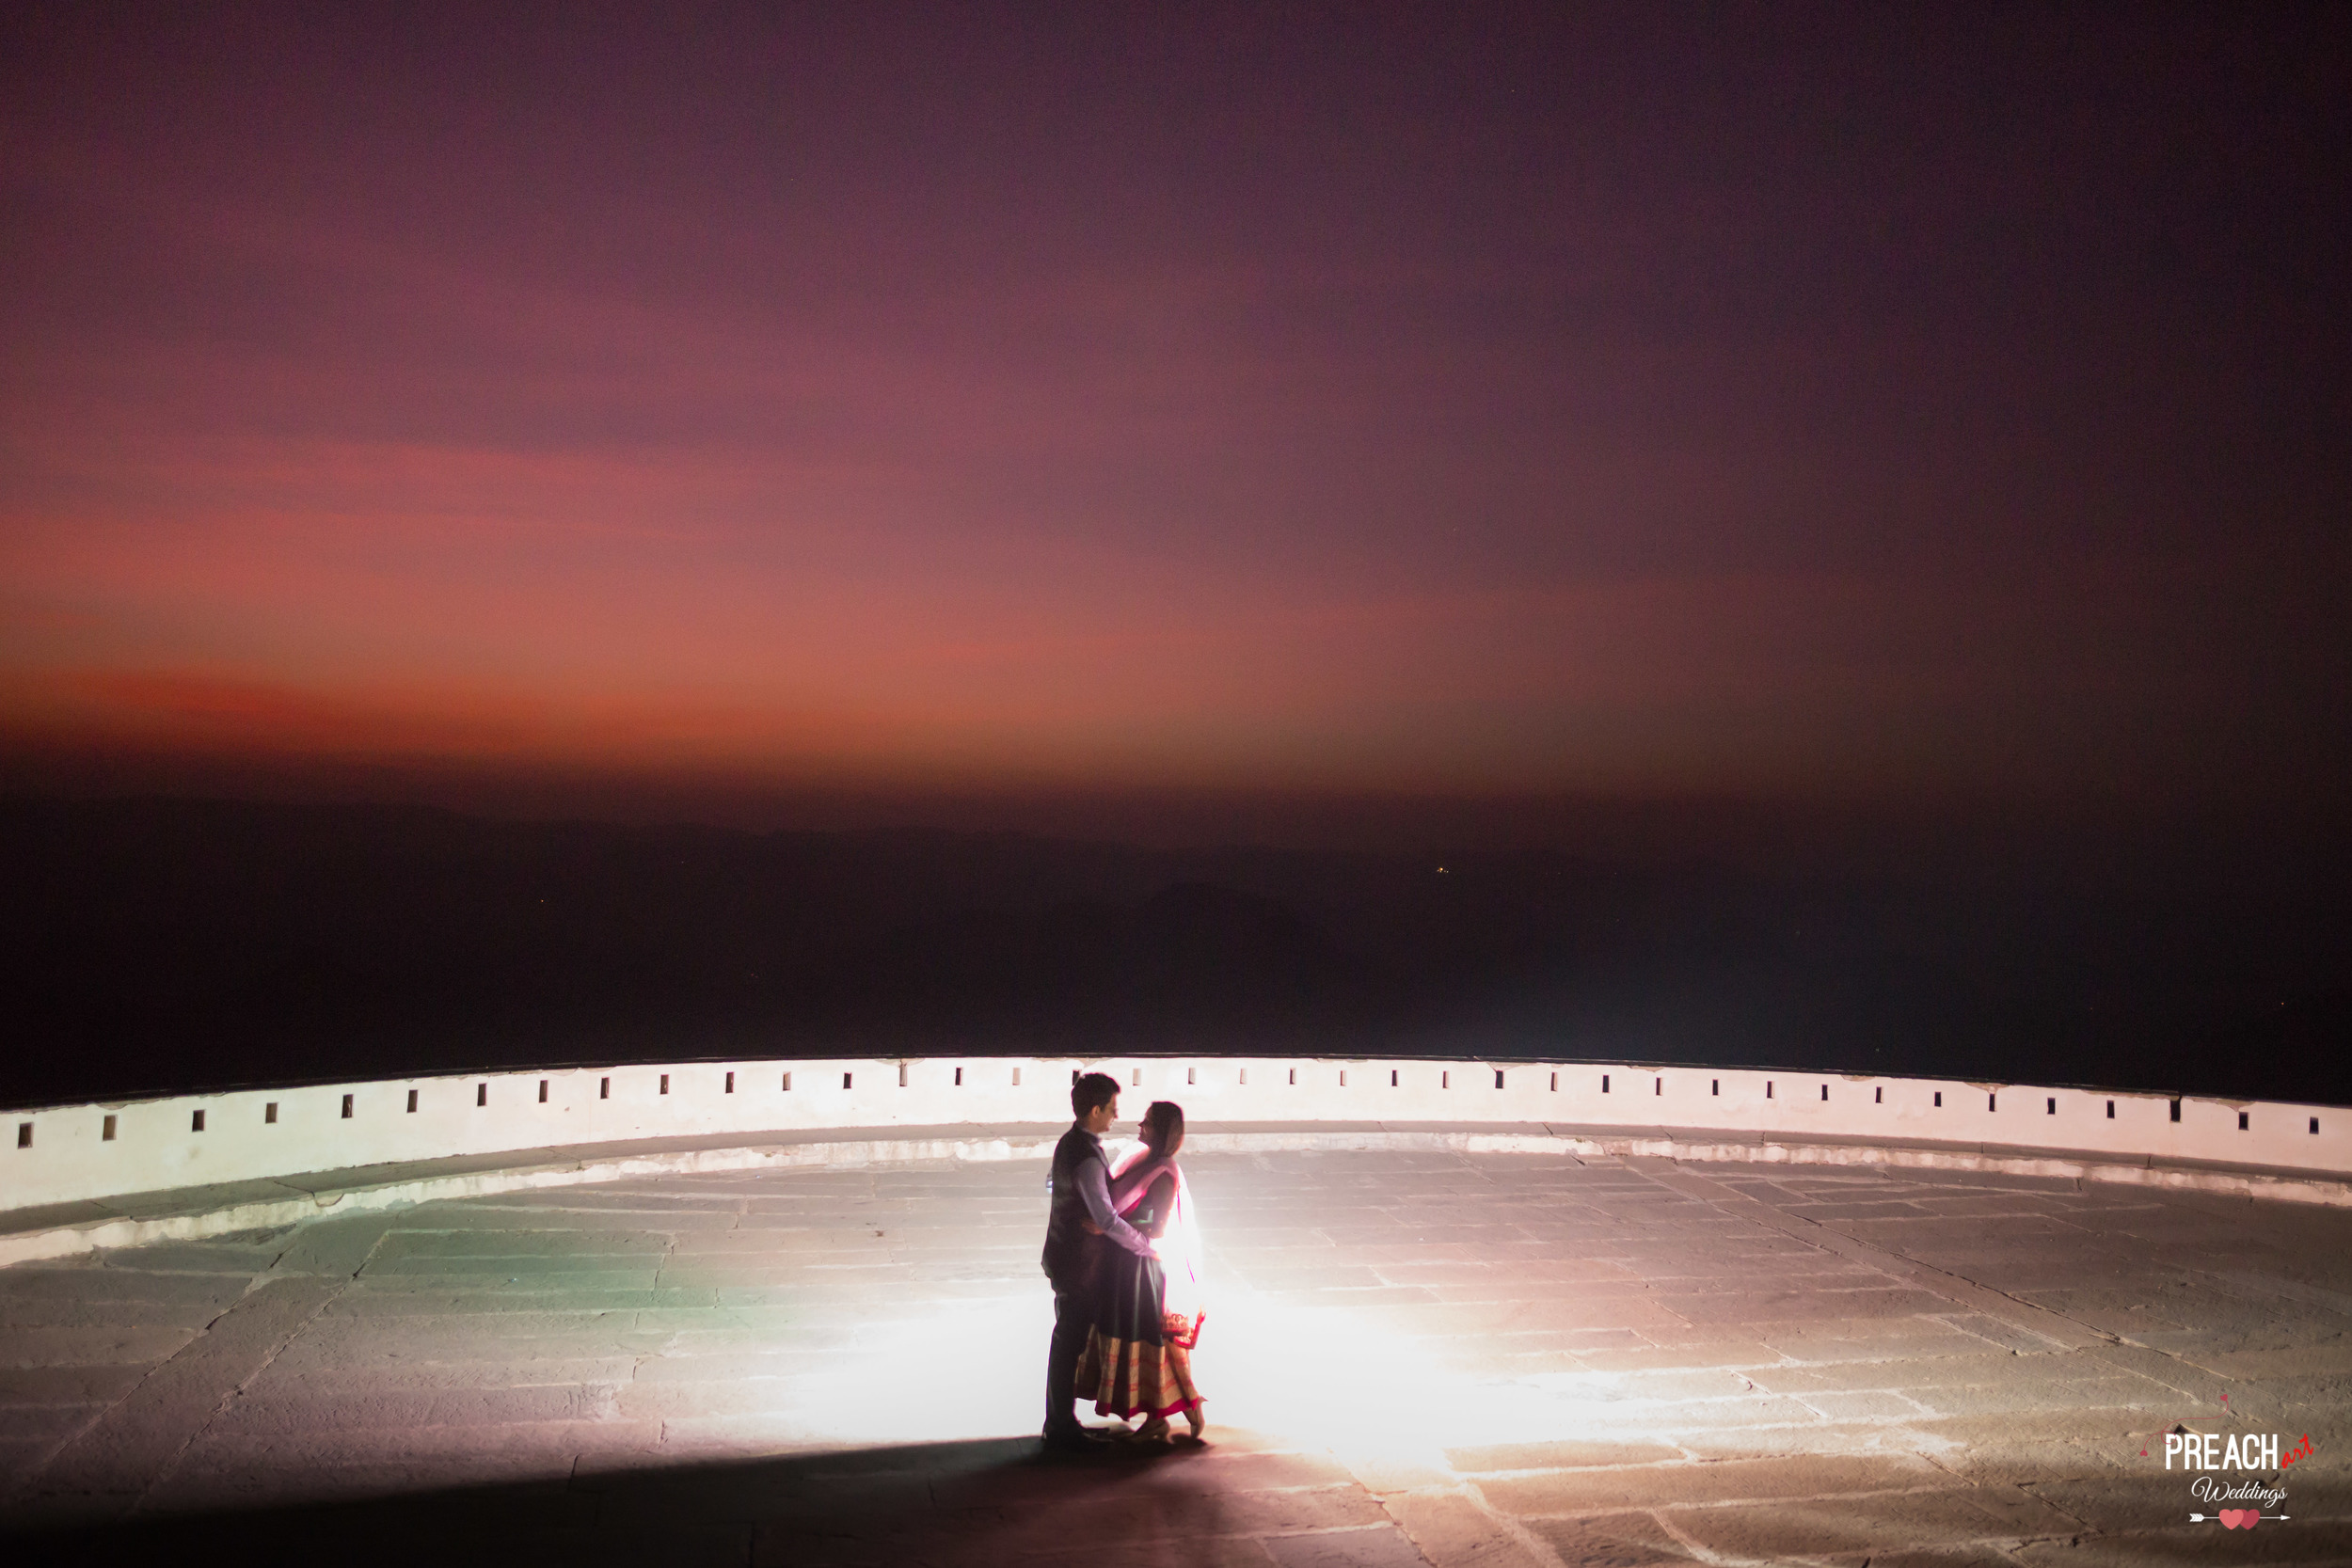 A&B_Udaipur Pre-wedding Shoot_PREACH ART-96.jpg